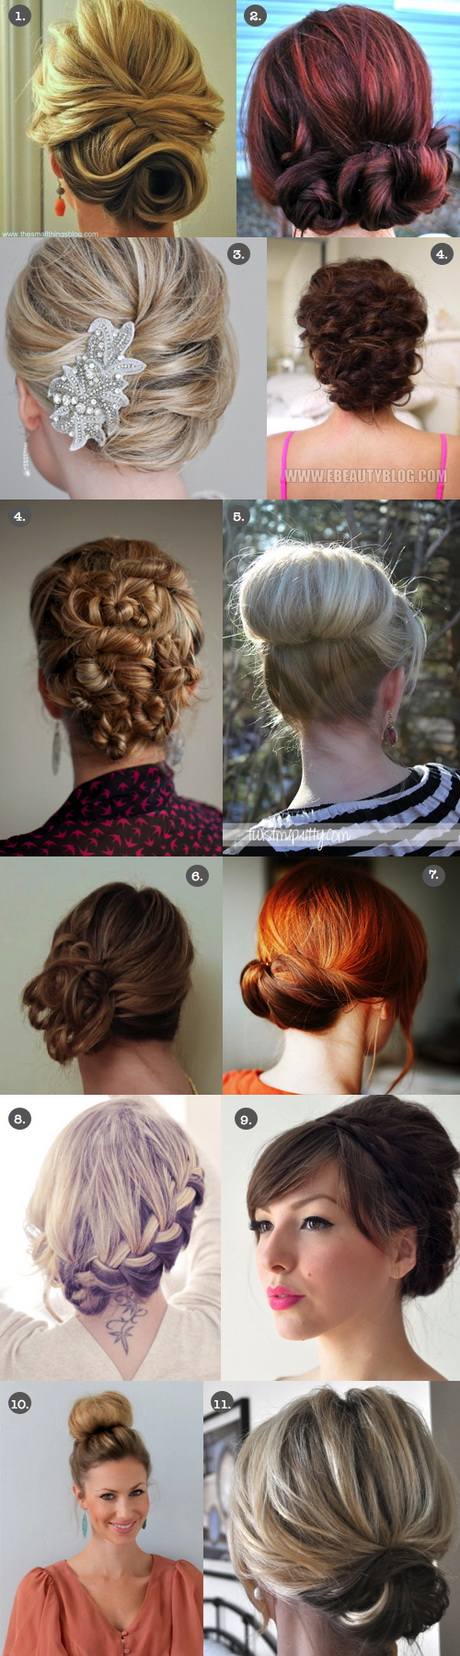 Prom Hairstyles For Long Hair Diy : Easy do it yourself prom hairstyles